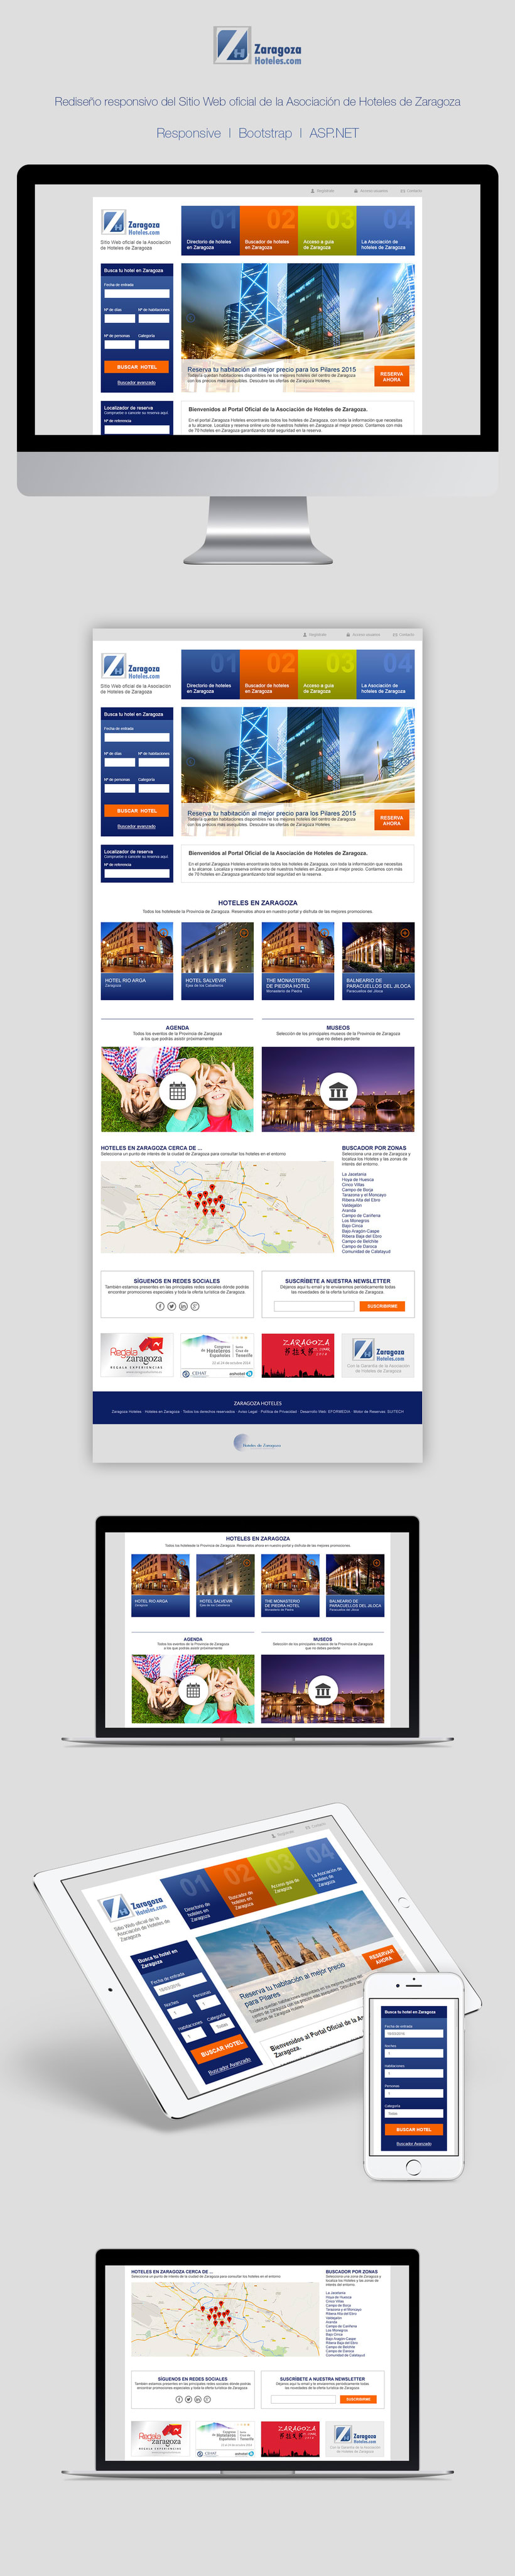 Zaragoza Hoteles | Website redesign -1